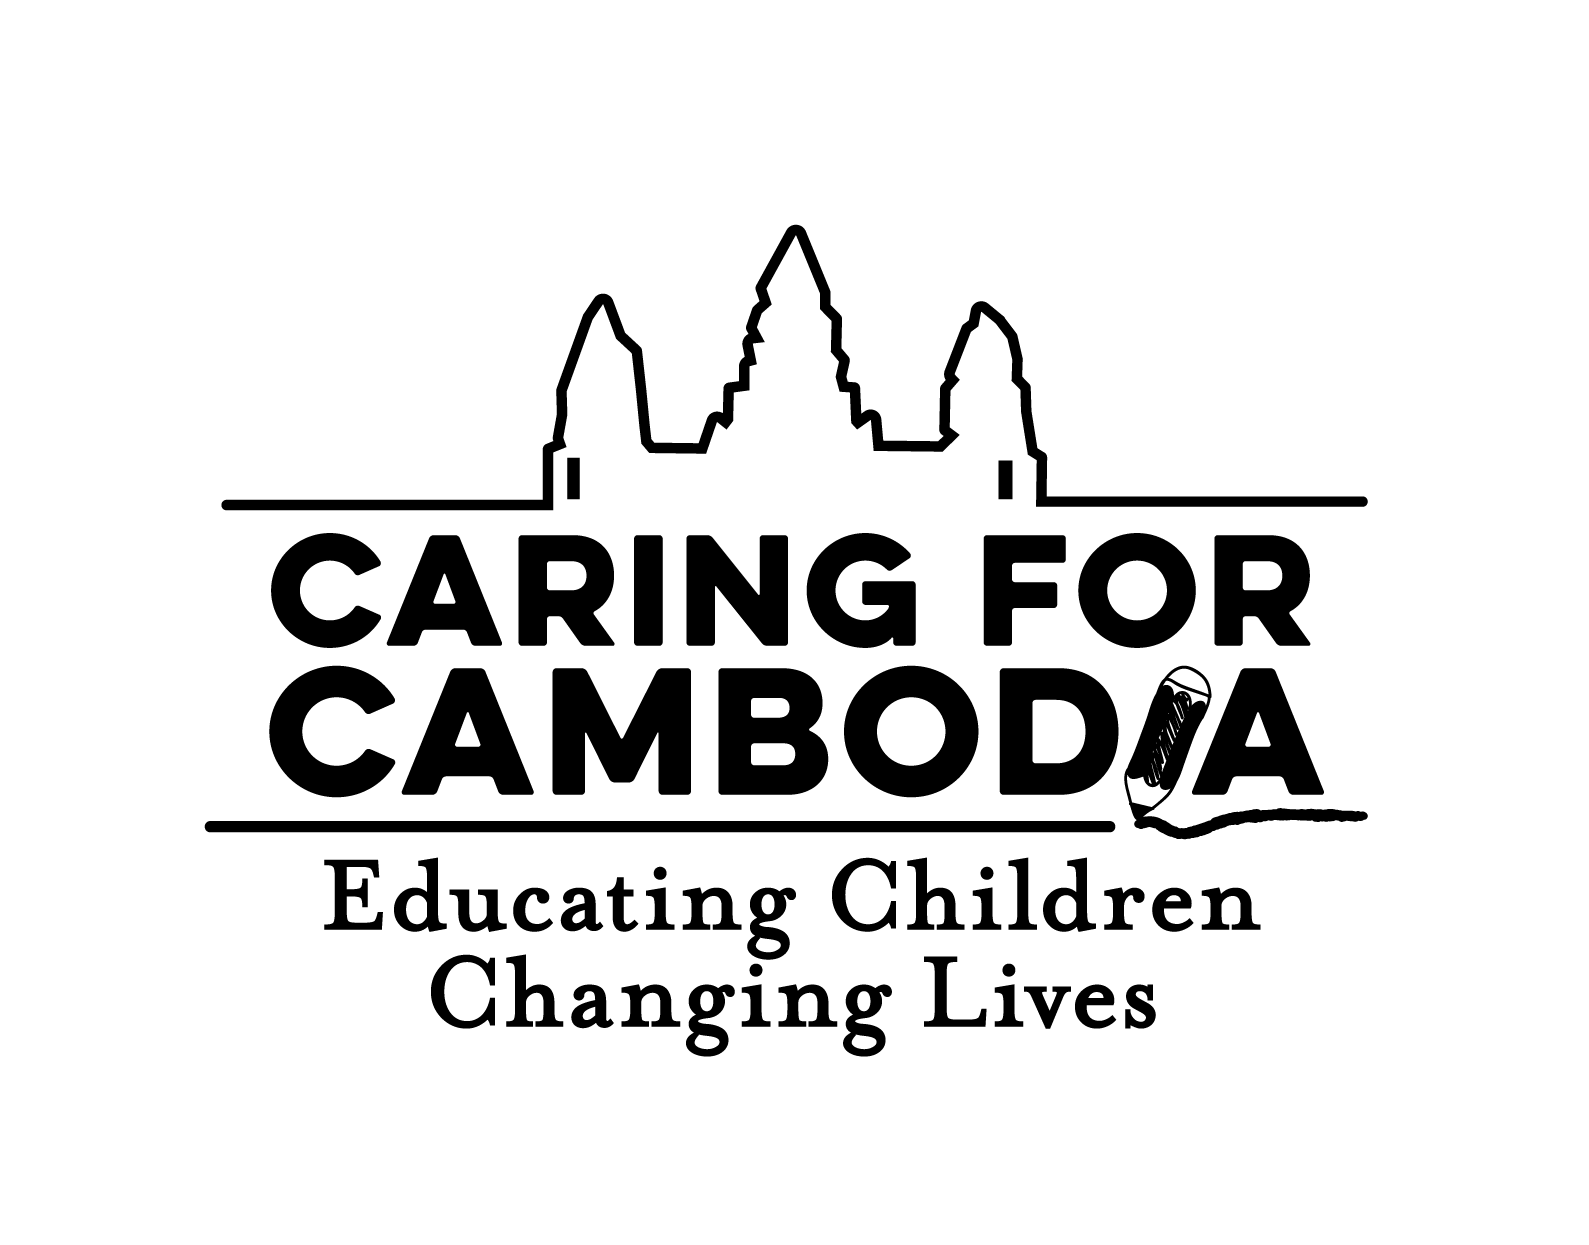 caring for cambodia logo